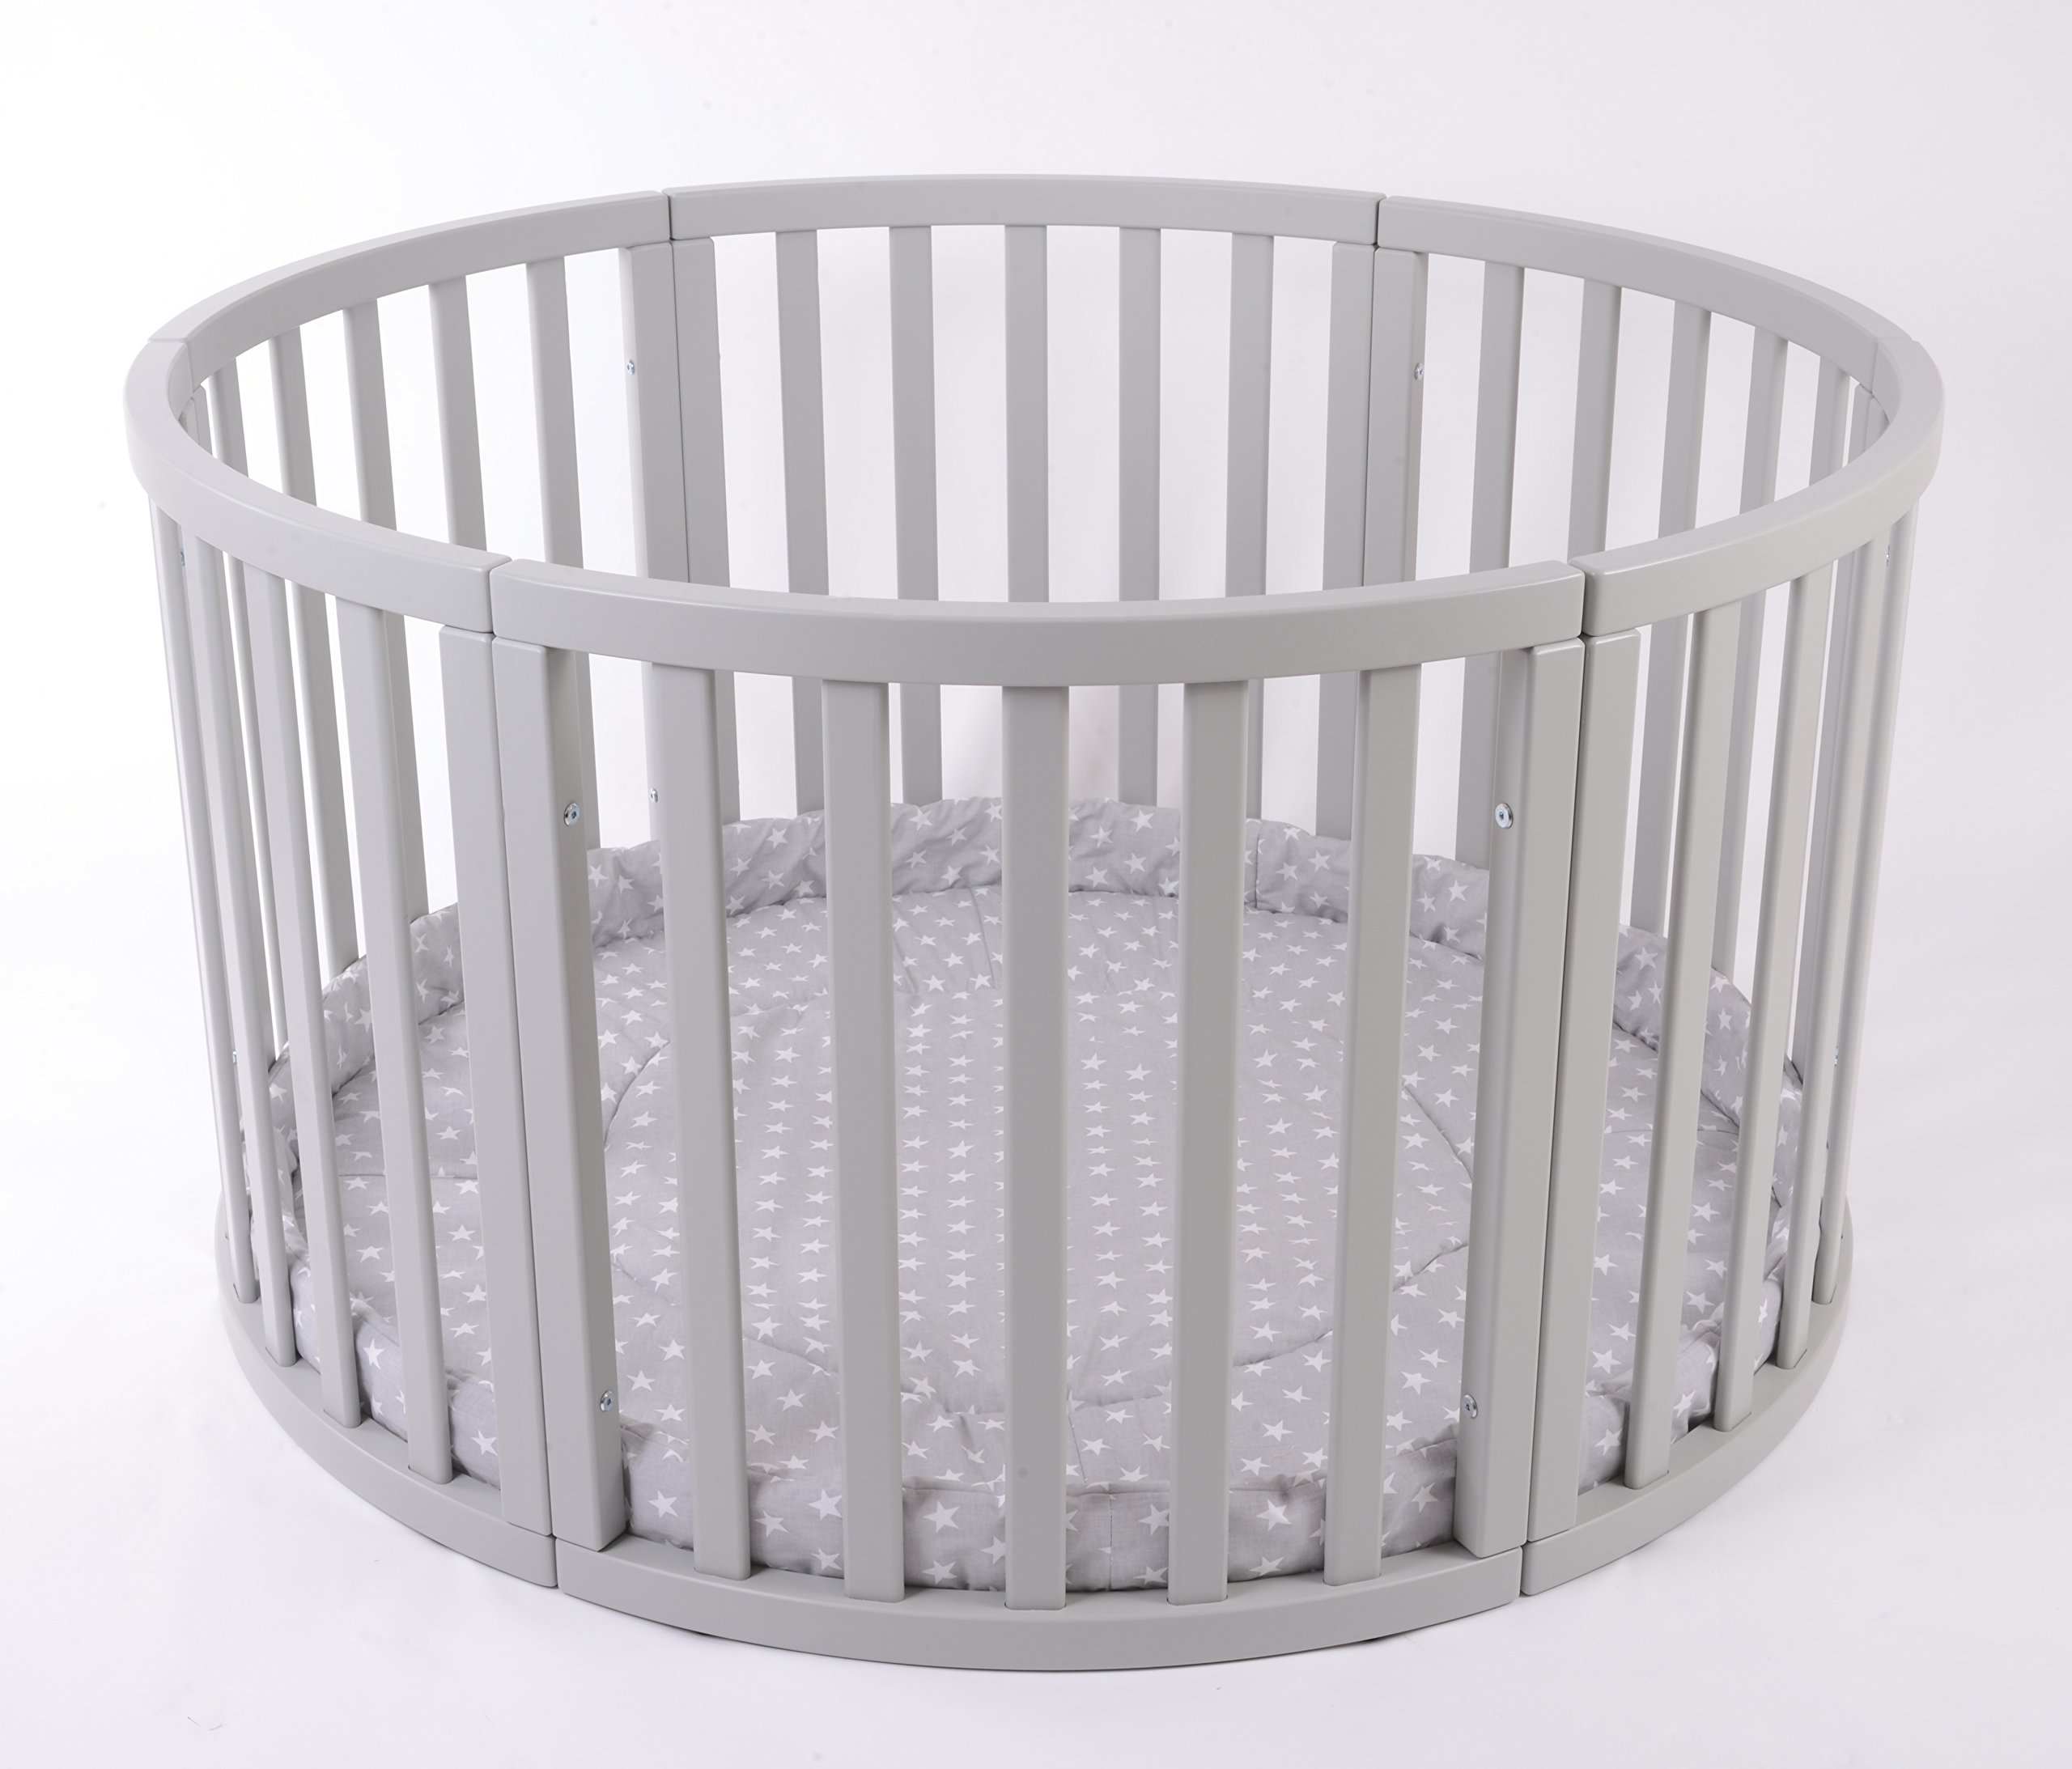 MJmark Round PLAYPEN APOLLO QUATTRO VERY LARGE Wooden play pen with play-mat SALE SALE (Grey Stars) MJmark Height 70 cm approx; Ø 120cm including Playmat made from solid hard wood (Birch) 1